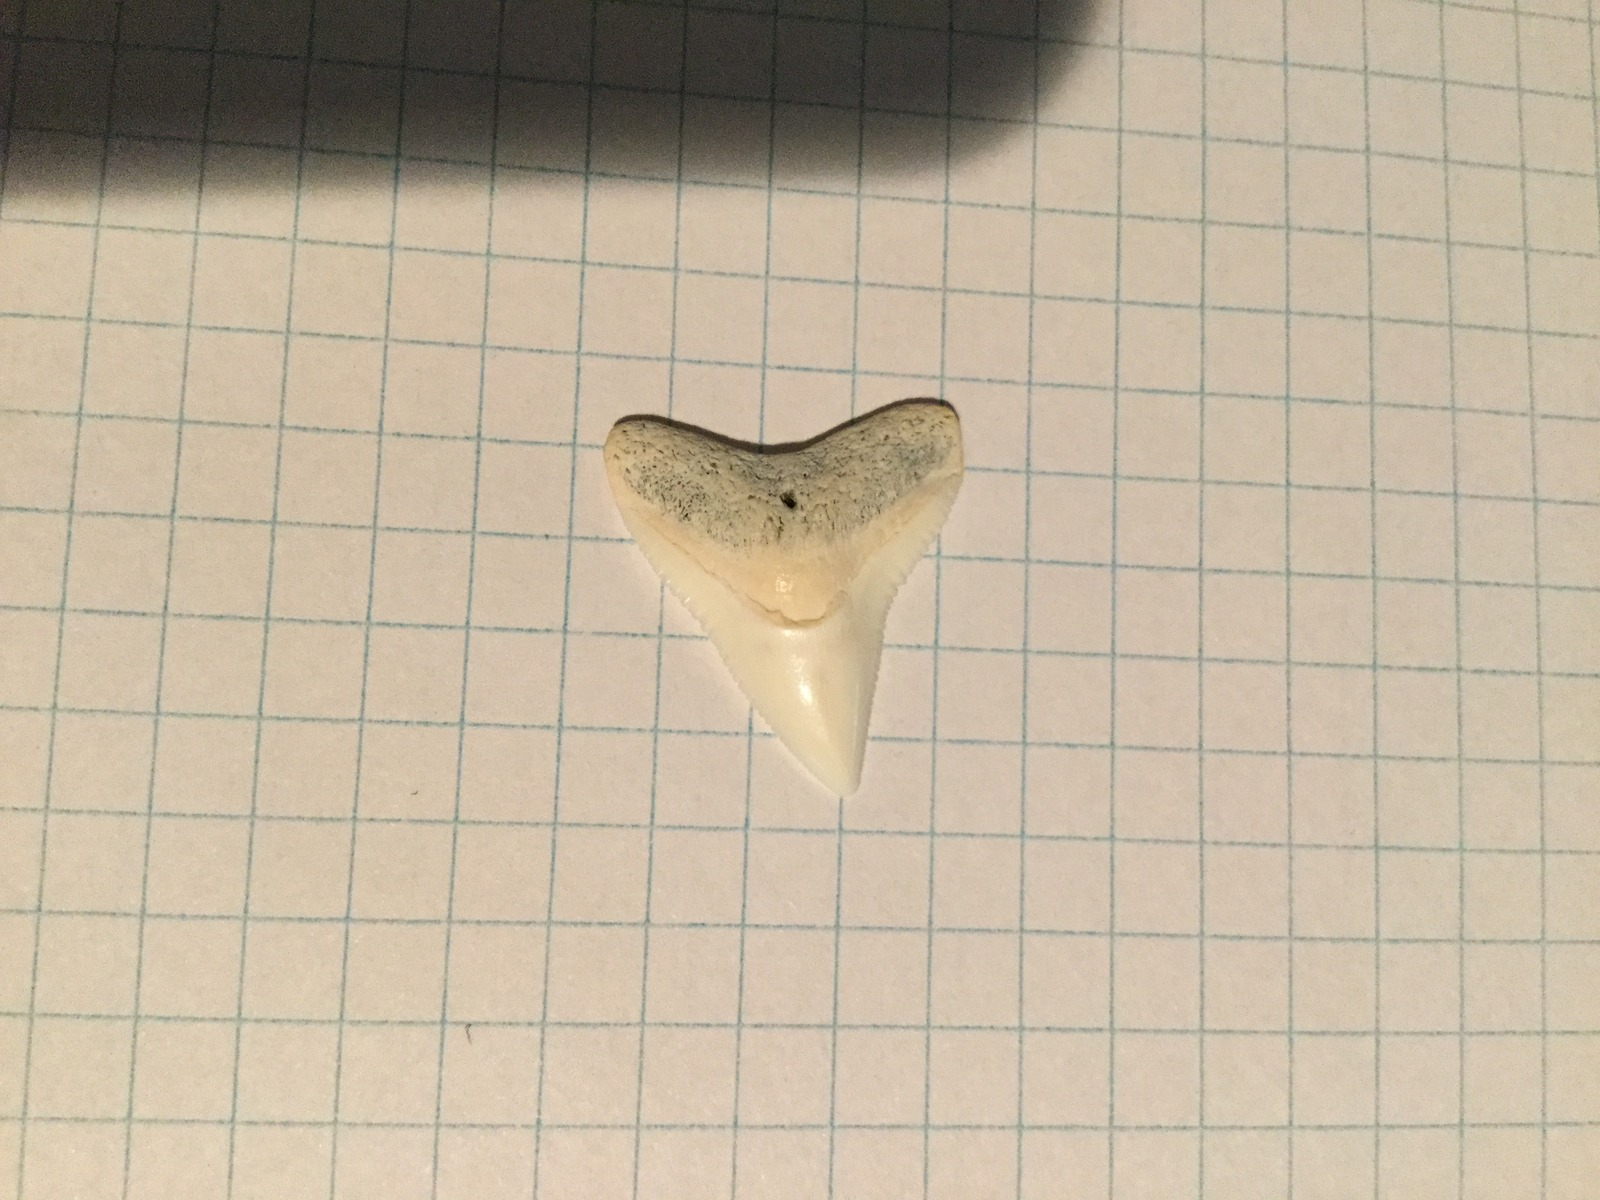 Medium Dusky or Bull Sharks' Tooth (3)